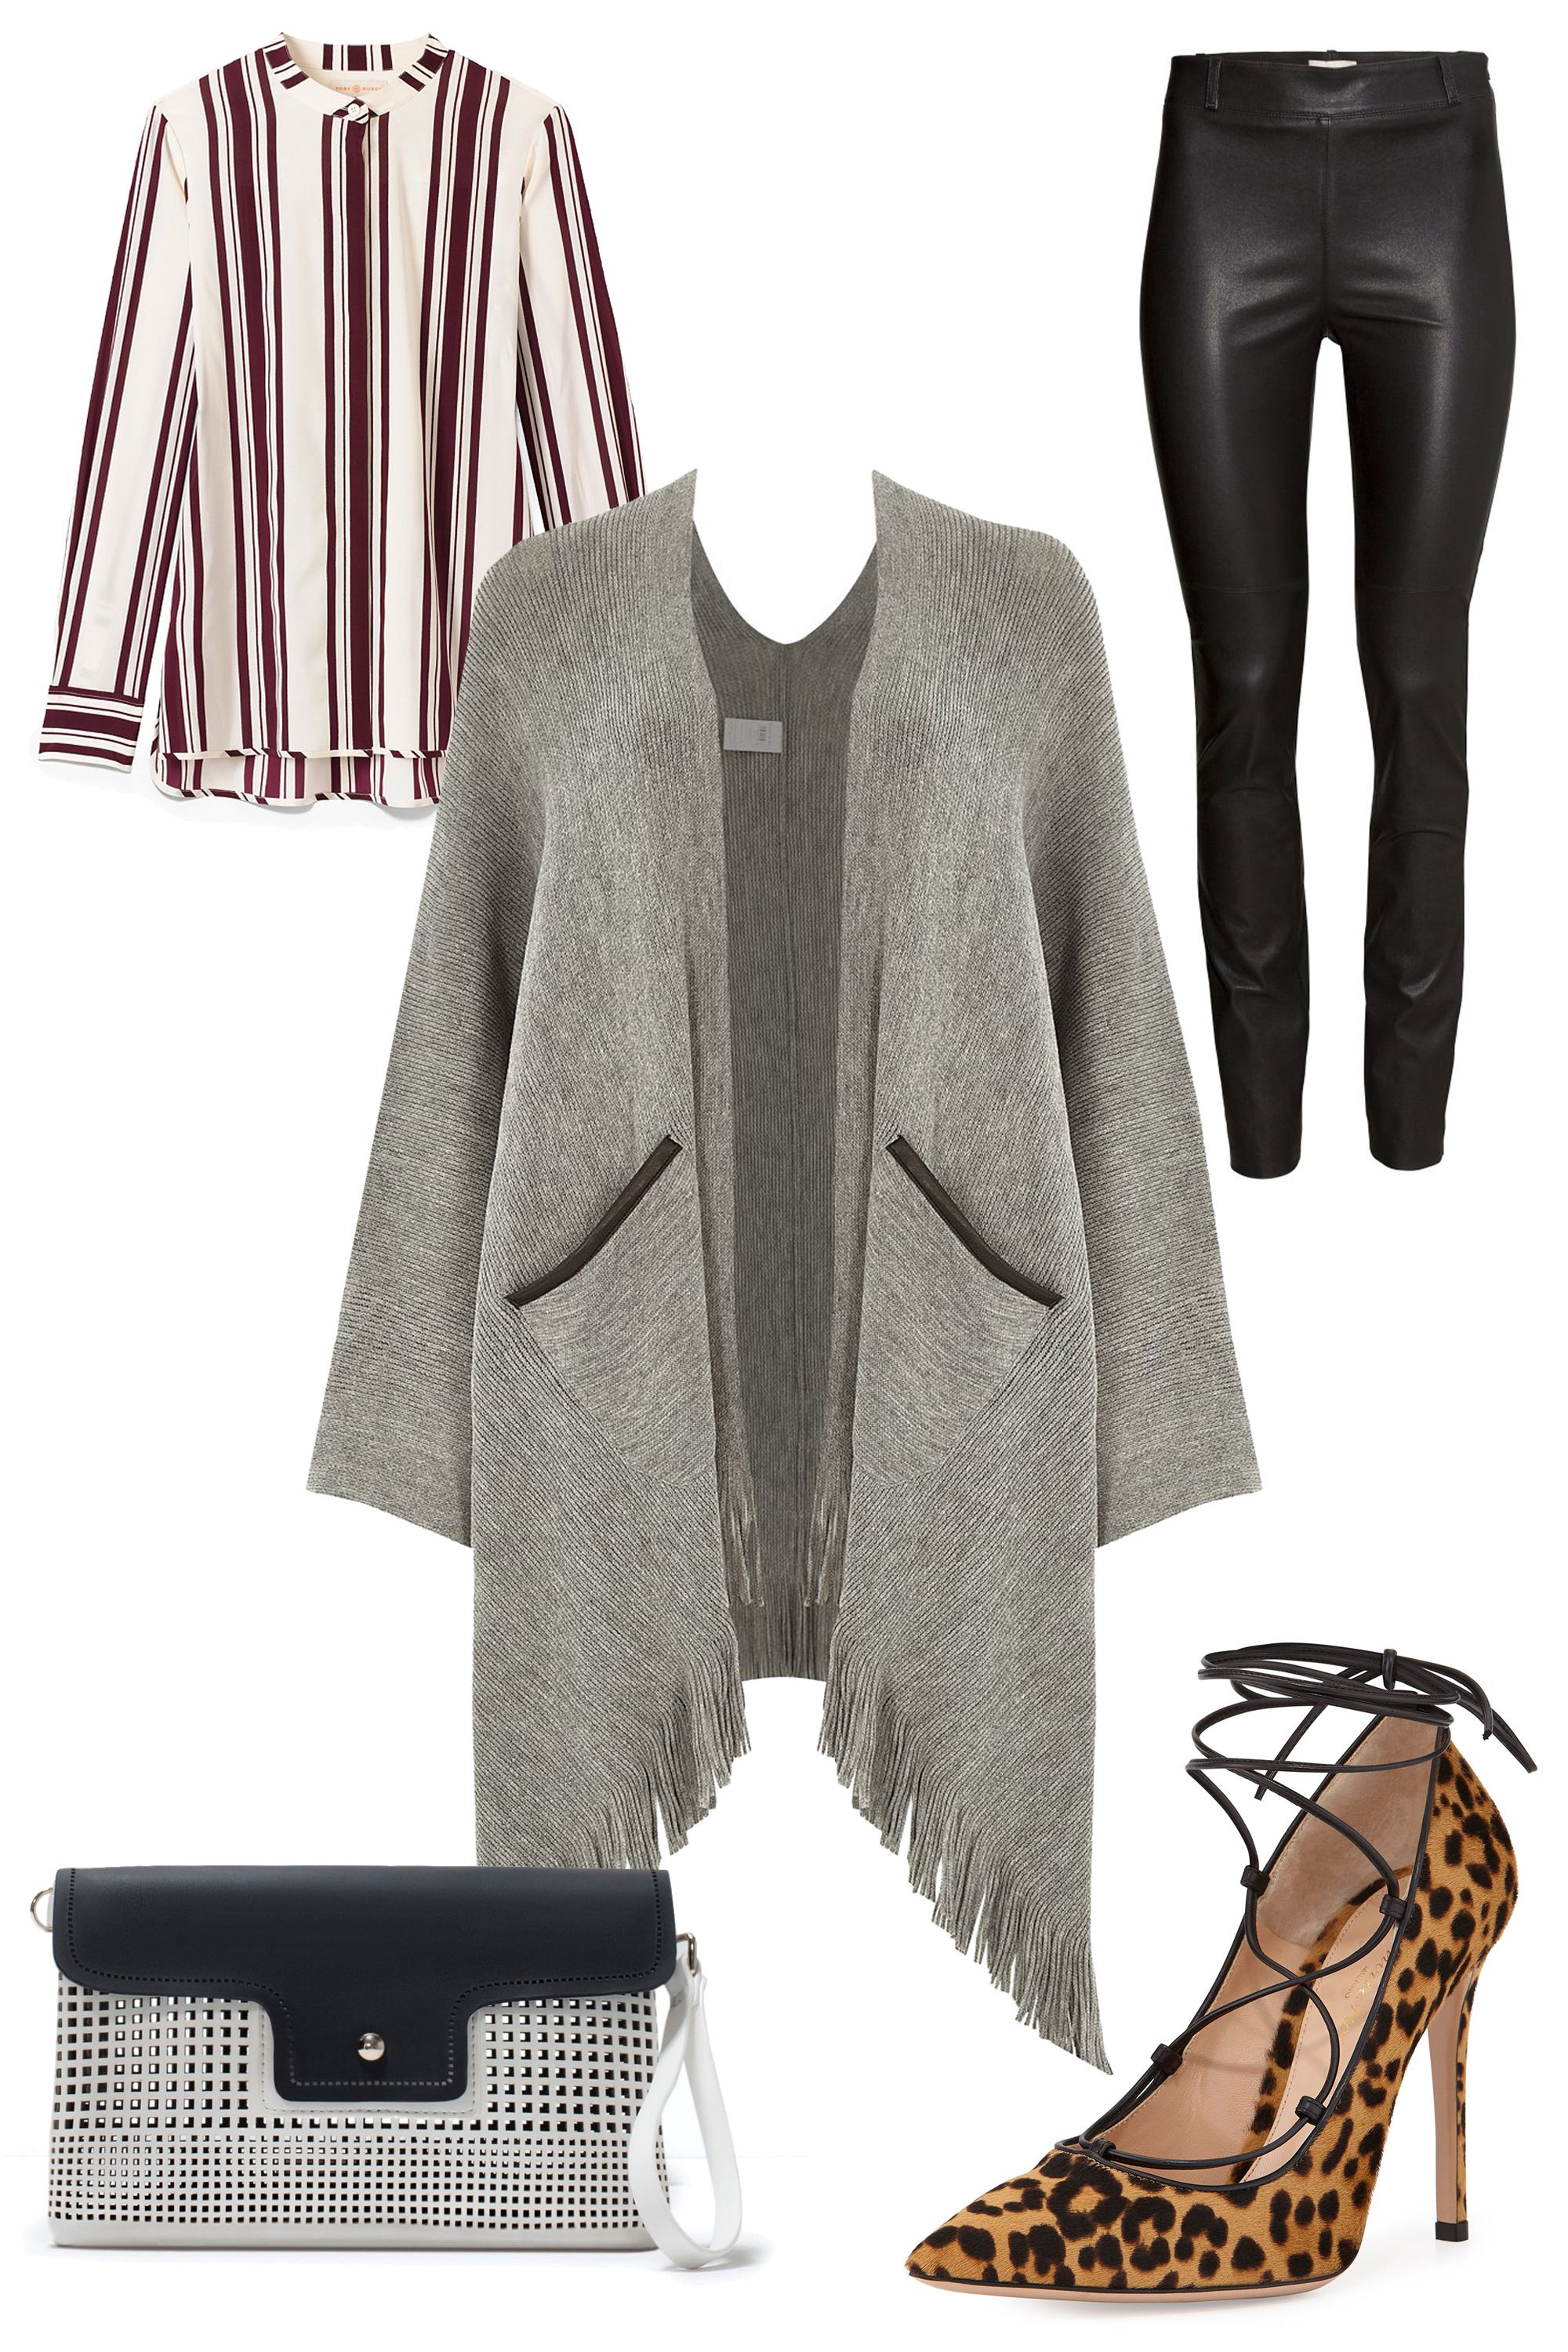 "<strong>River Island Oversized Tassel Trim Cape, $70&#x3B; <a href=""http://us.riverisland.com/women/coats--jackets/capes--kimonos/grey-oversized-tassel-trim-cape-670412"">riverisland.com</a></strong>